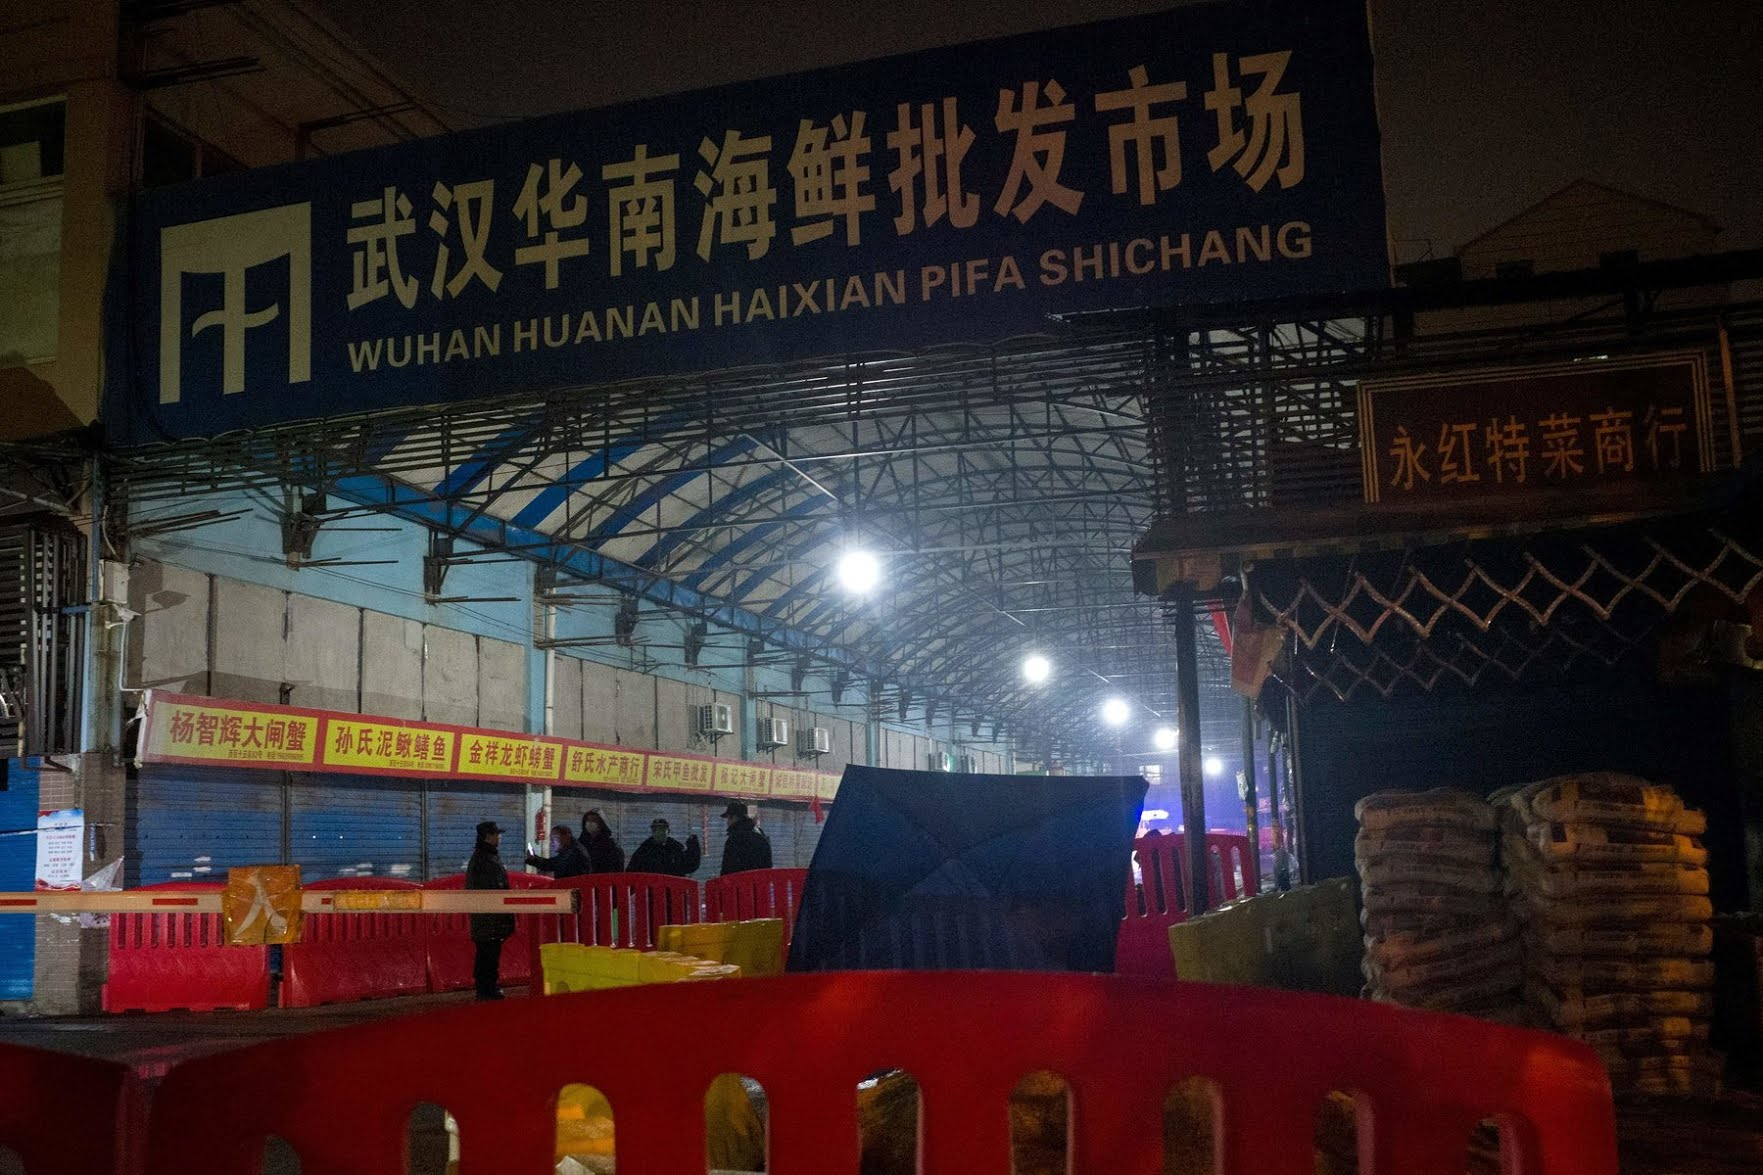 A seafood wholesale market in Wuhan, China, now shut down, where some people appear to have contracted the new coronavirus.